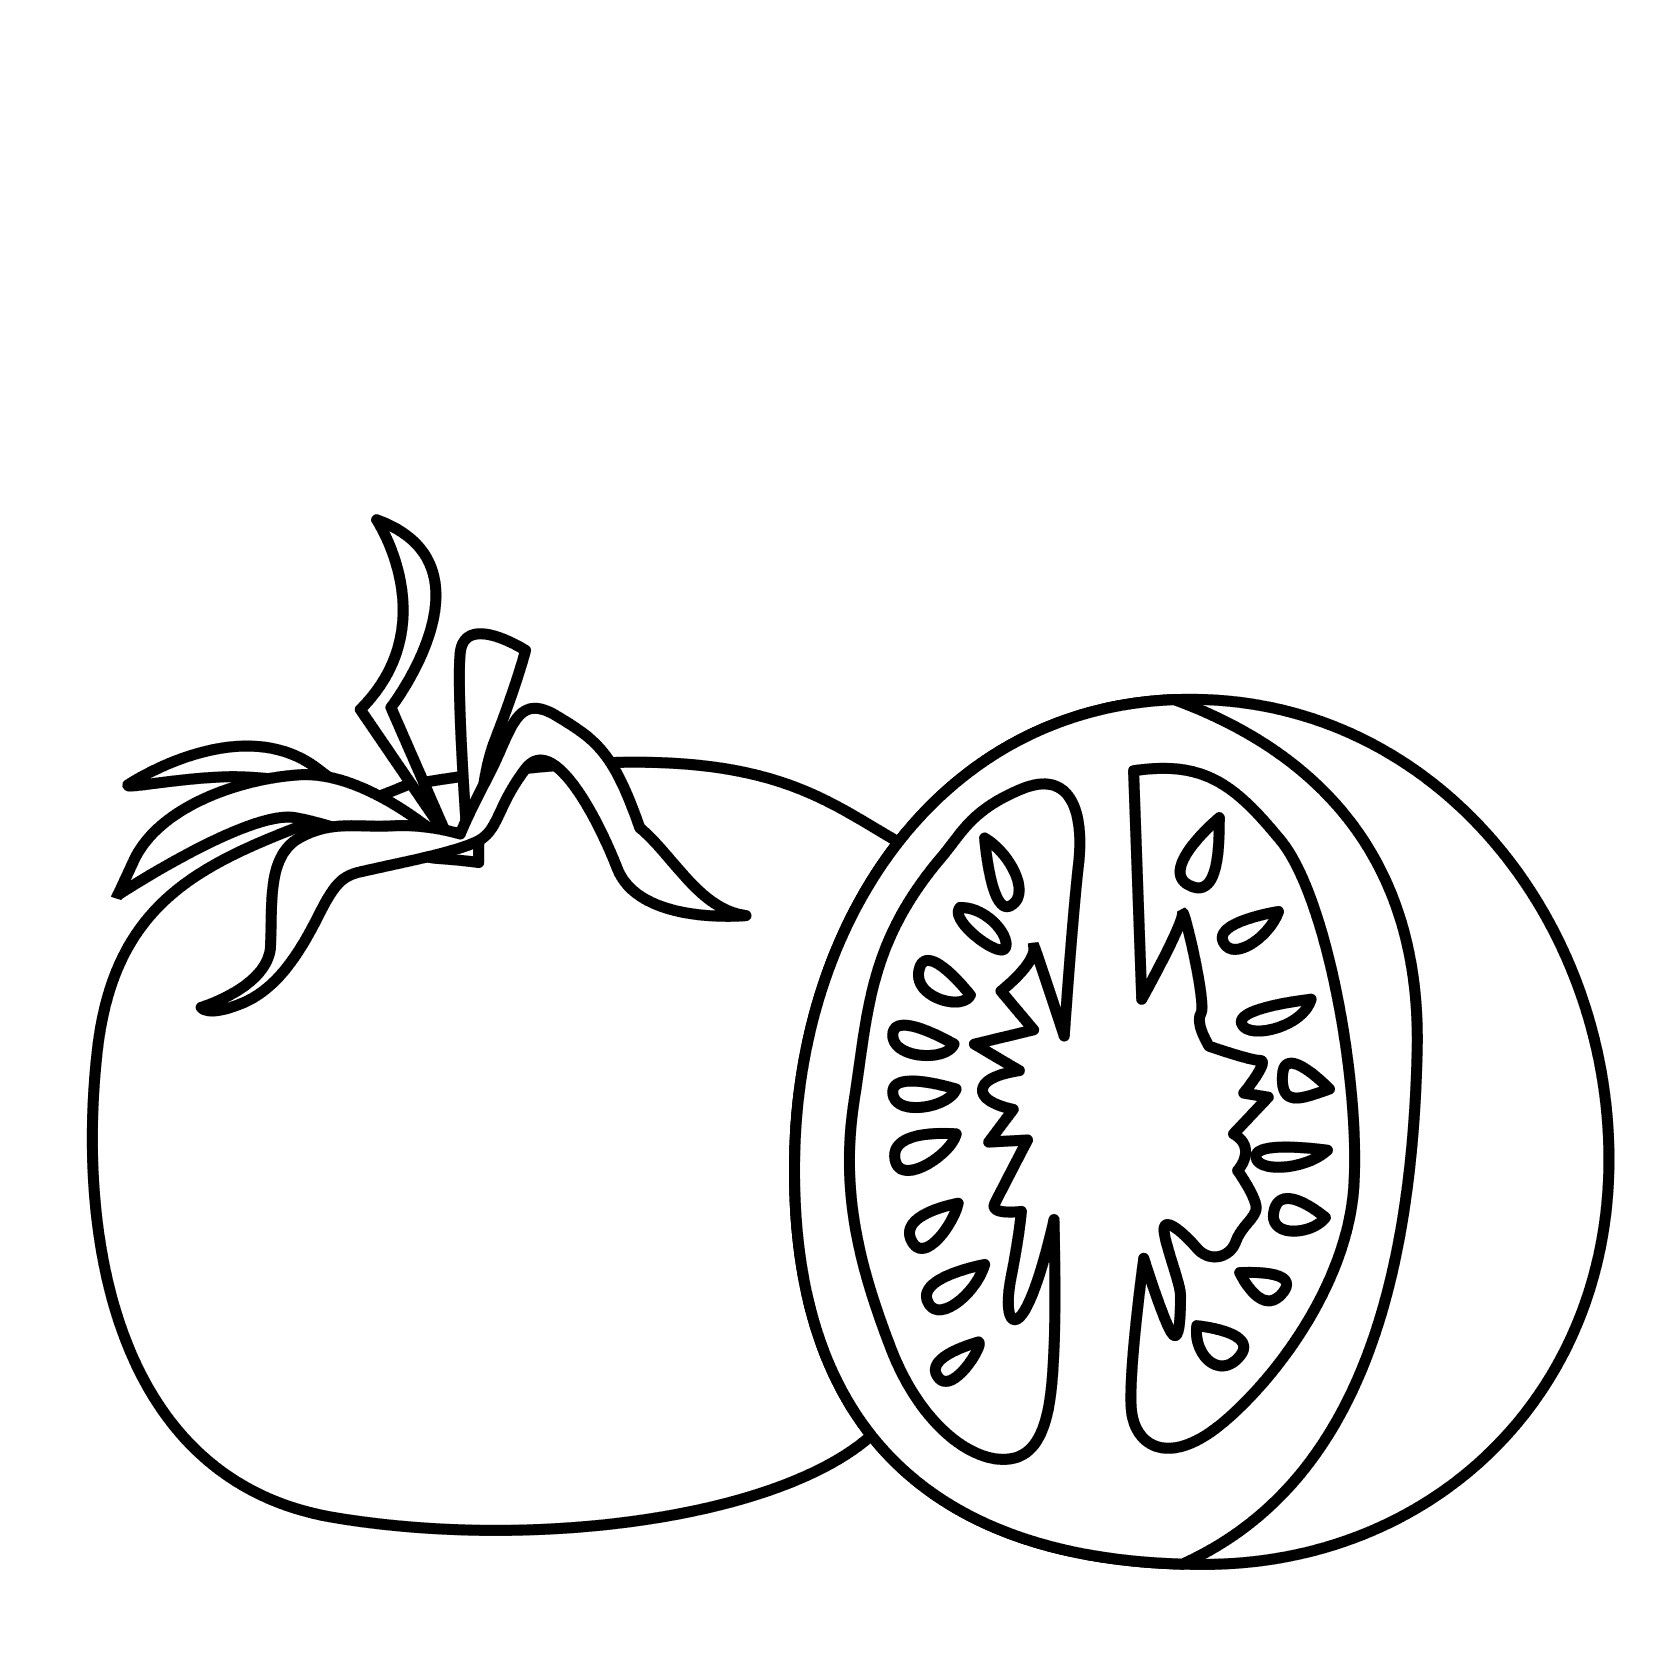 Tomato Coloring Pages Best Coloring Pages For Kids Coloring Pages For Kids Tomato Coloring Page Coloring Pages